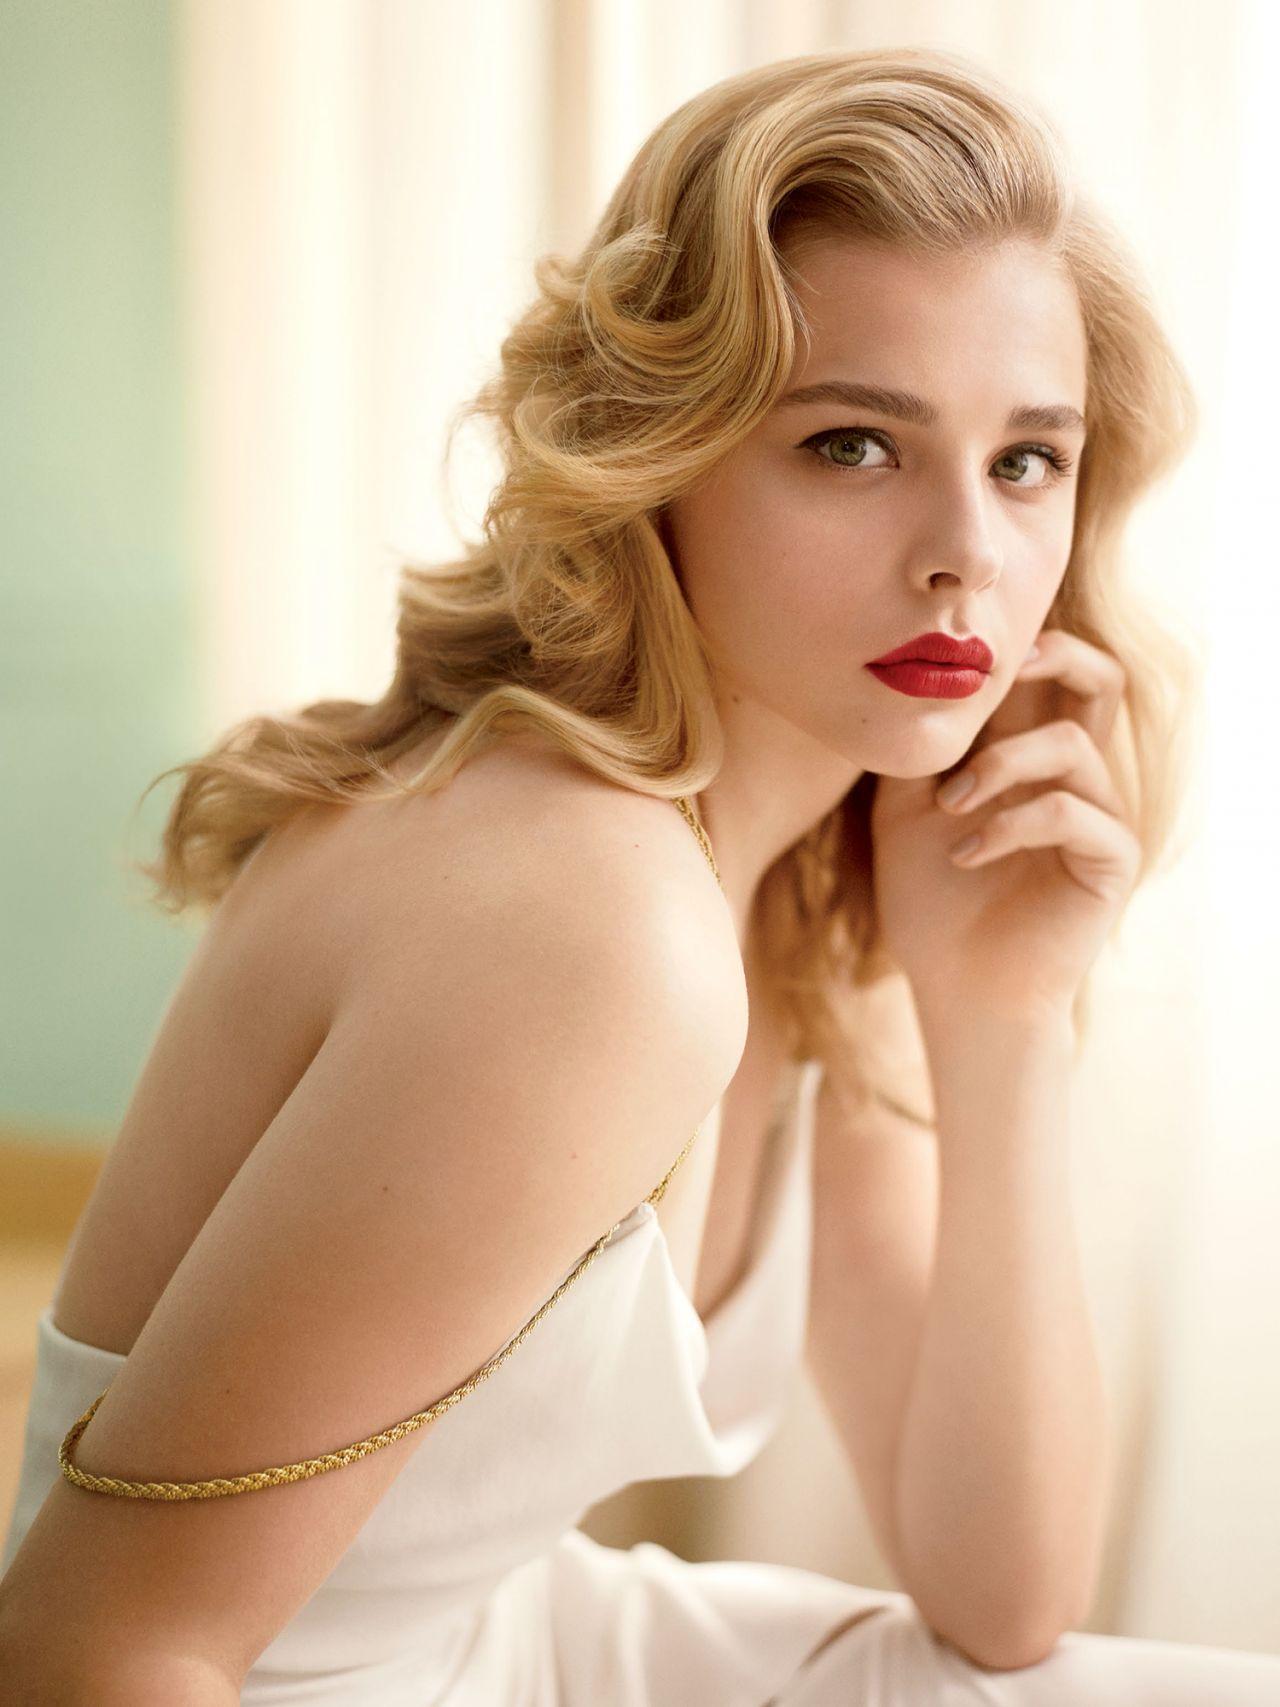 Chloe Moretz – Photoshoot for Allure Magazine September 2014